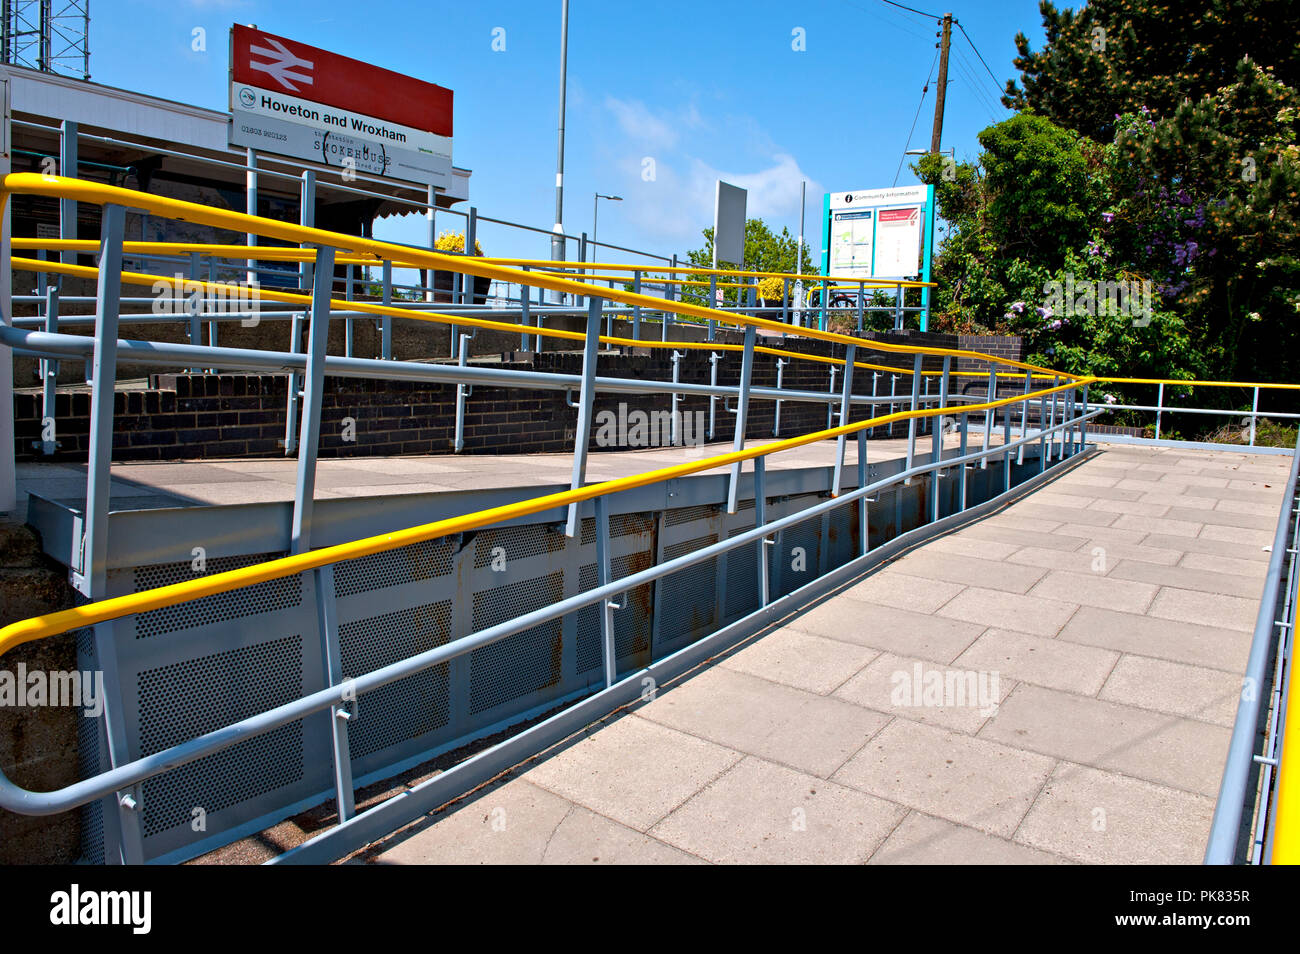 Wheelchair access ramp at Hoveton & Wroxham railway station Norfolk UK - Stock Image